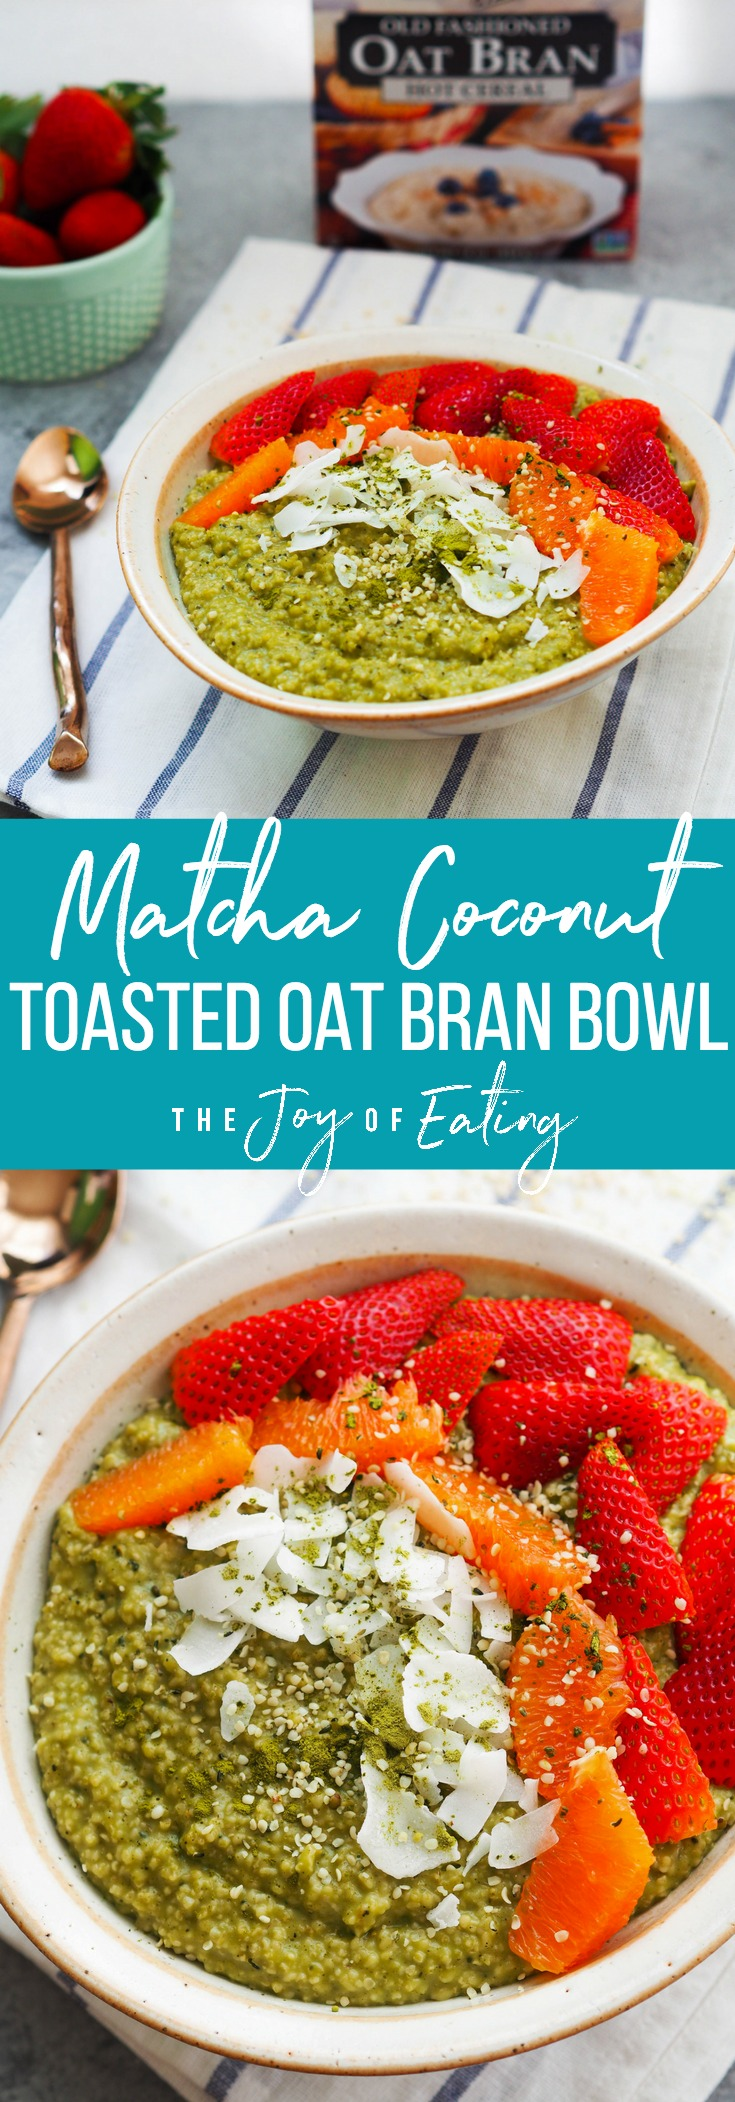 If you like oatmeal, you'll LOVE oat bran! It's ultra creamy and cooks in just a few minutes. Try it in this matcha coconut toasted oat bran bowl that's packed with antioxidants and filling fiber! #oatmeal #breakfast #glutenfree #vegan #matcha